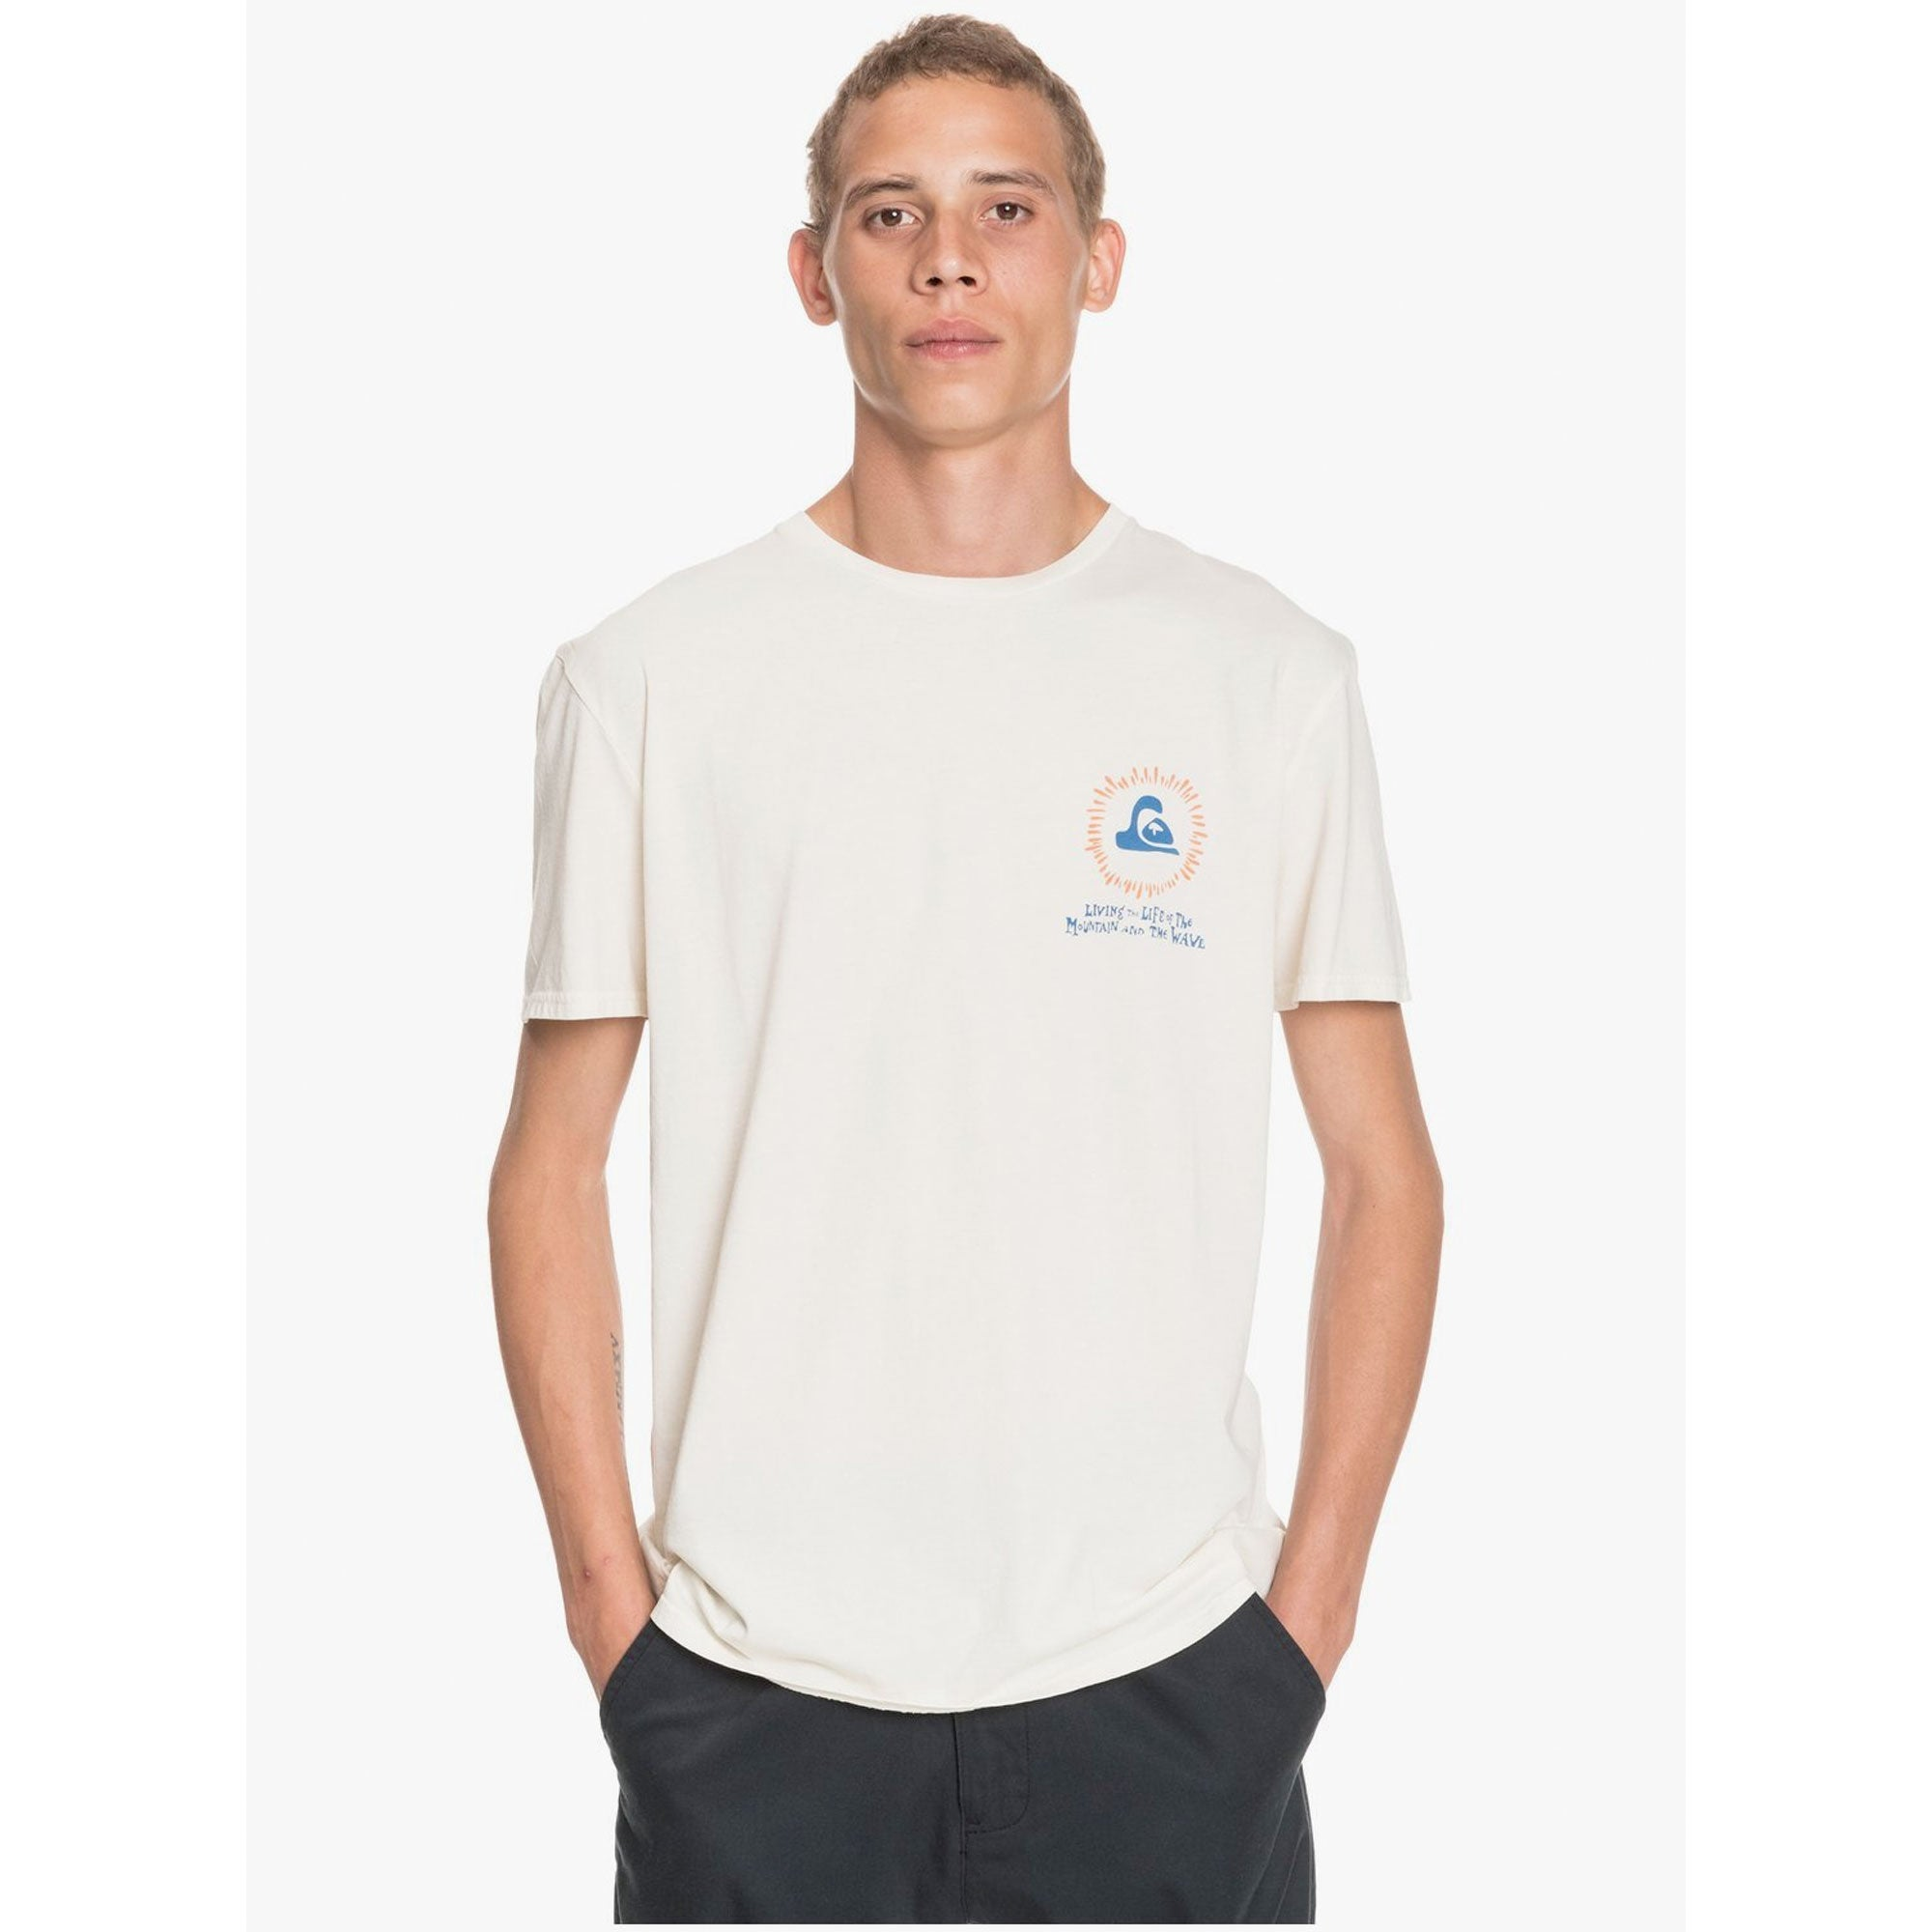 Quiksilver Pier Bowl Men's S/S T-shirt White